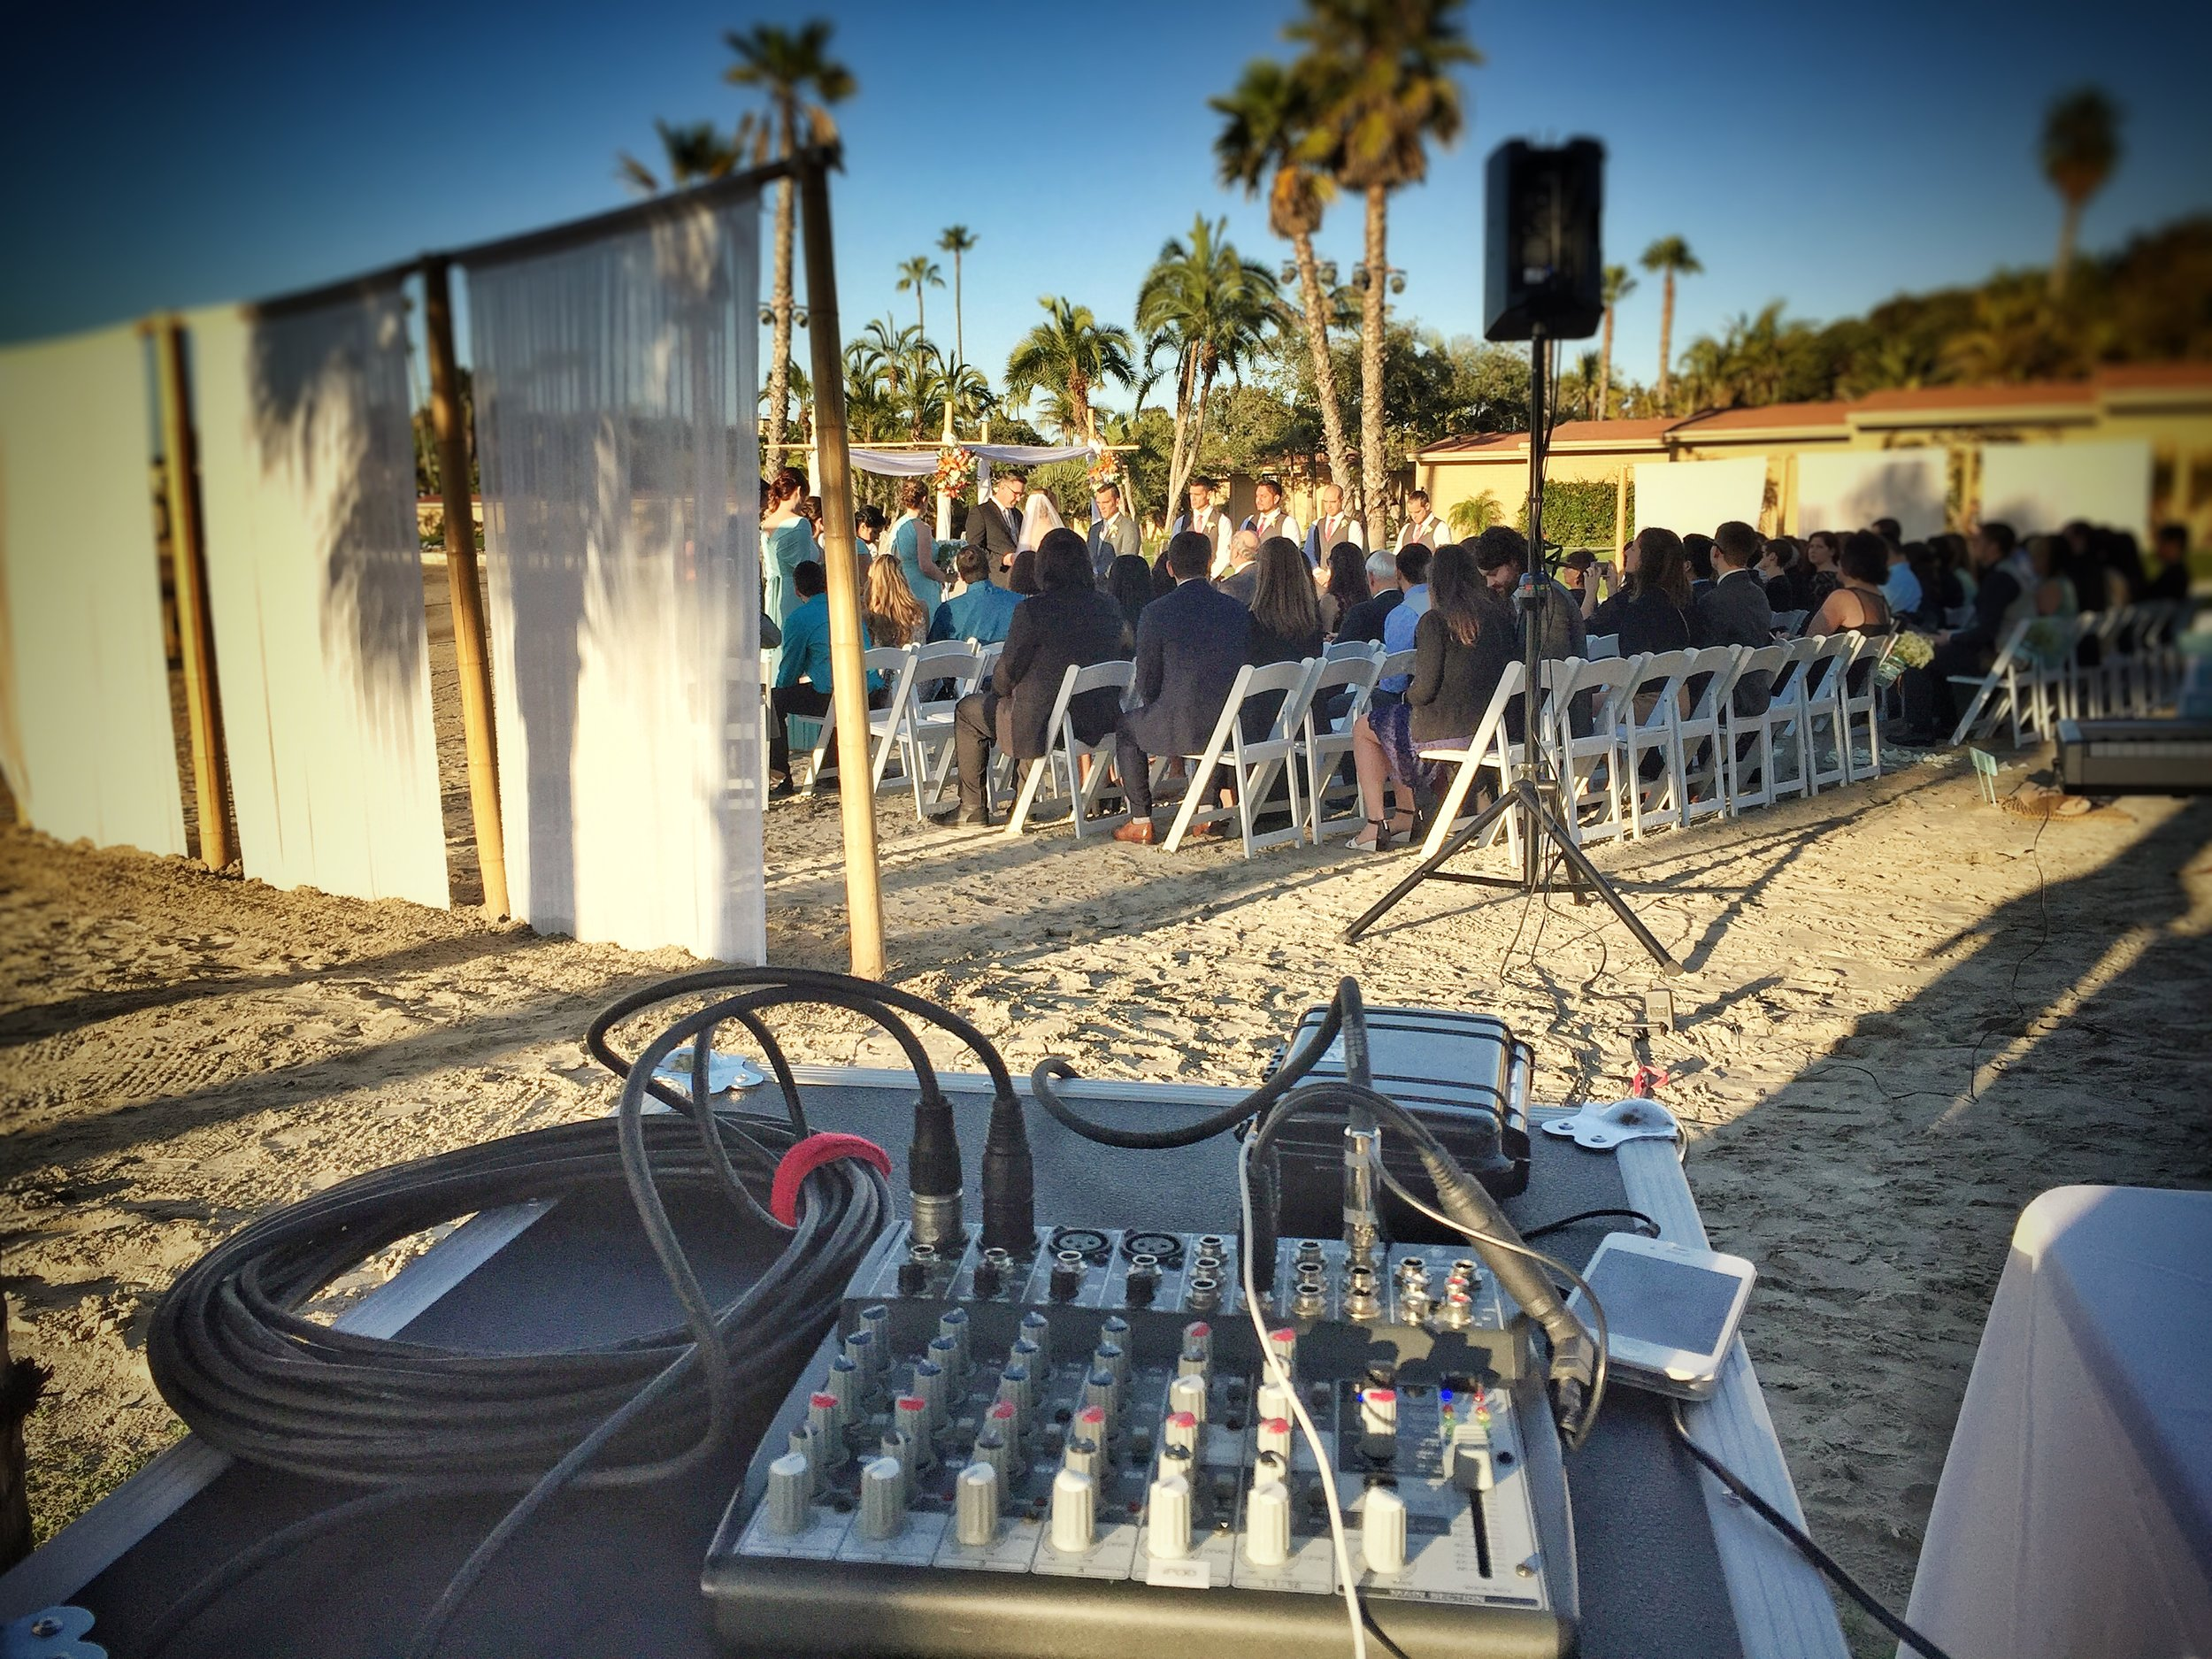 Nichole and Johan's wedding ceremony in progress, as seen from the DJ booth.